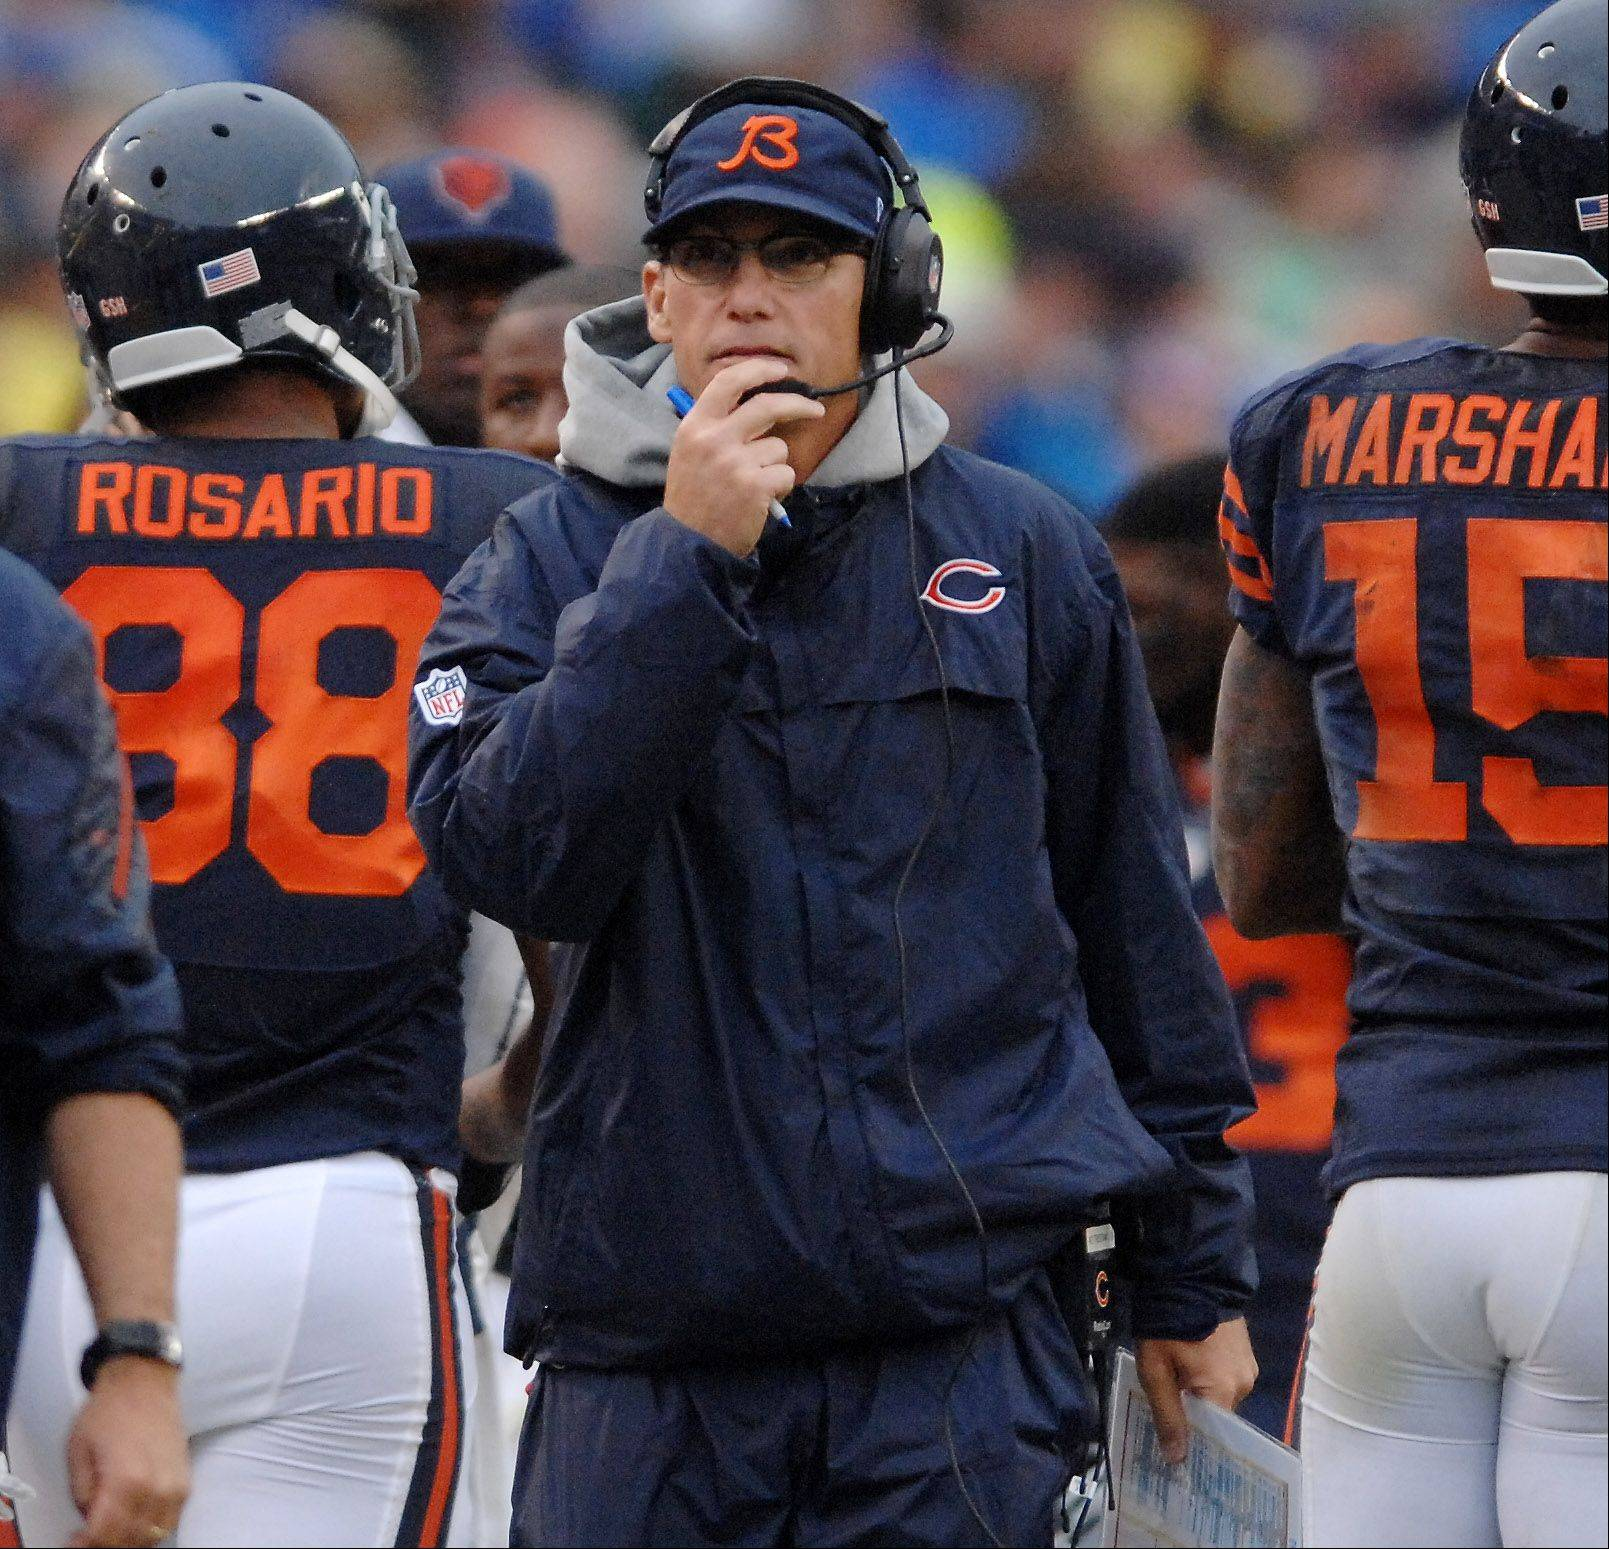 Bears head coach Marc Trestman has a calm demeanor and a focus that seems to work well for the Bears and their quarterback.